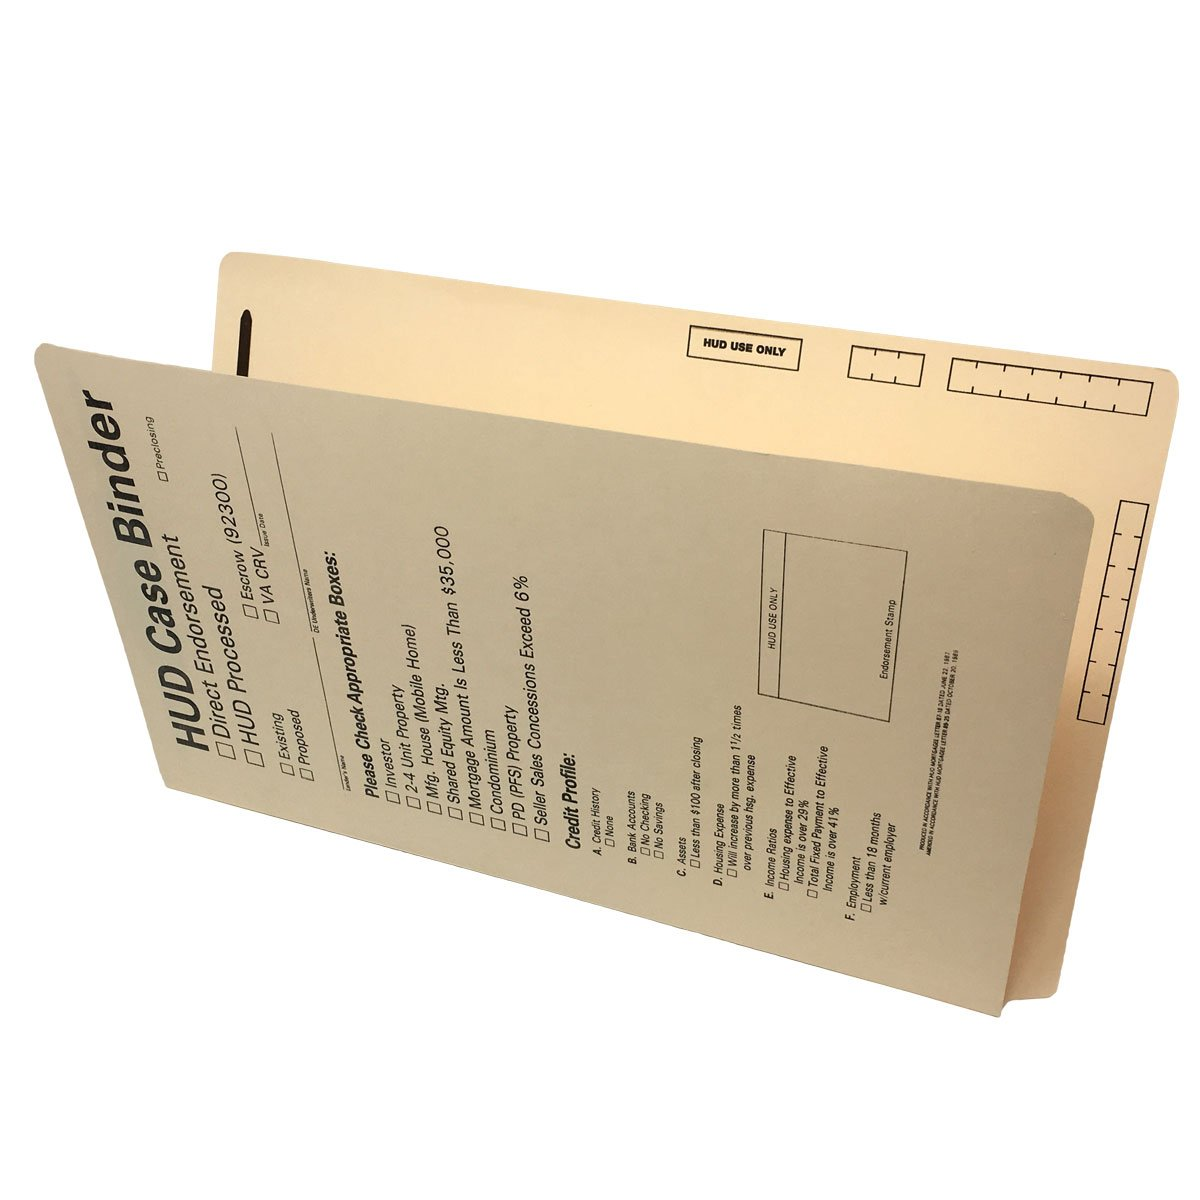 HUD Case Binders, 15 pt Manila, Legal Size, End/Top Tabs (Box of 50) by Ecom Folders